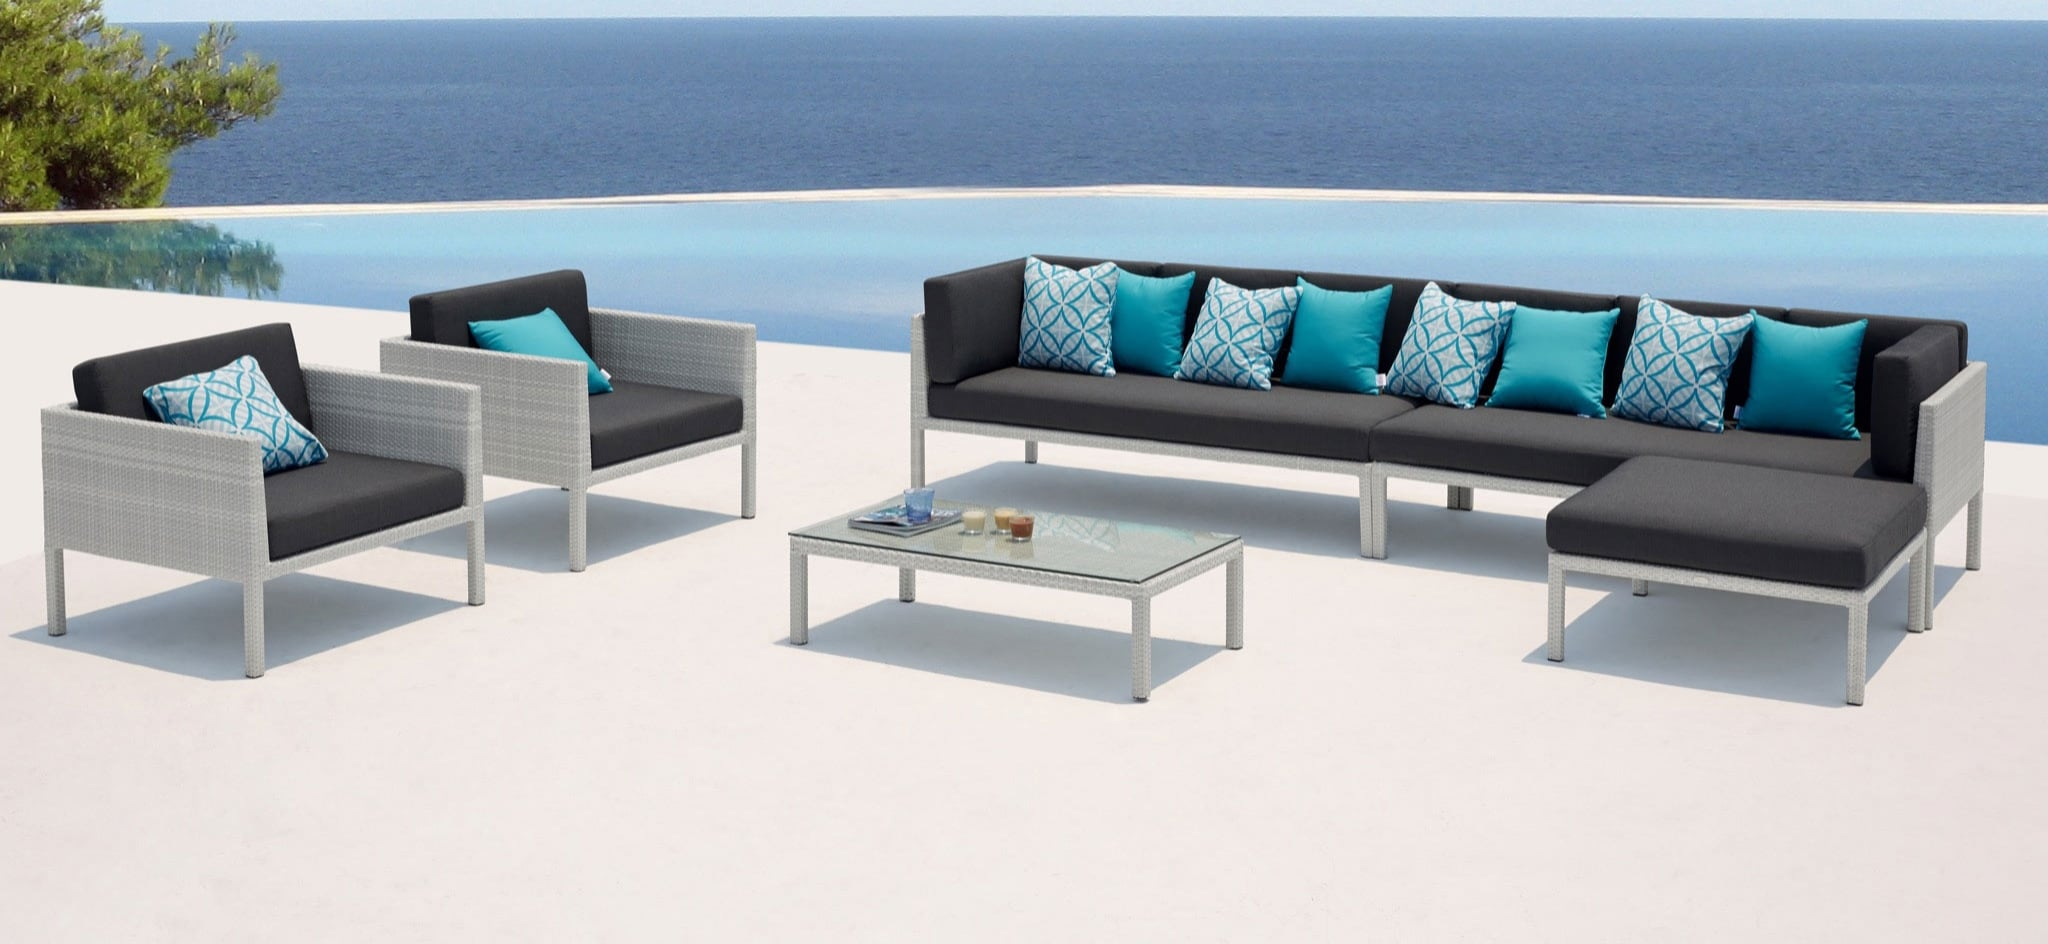 Florence Wicker Outdoor Furniture White